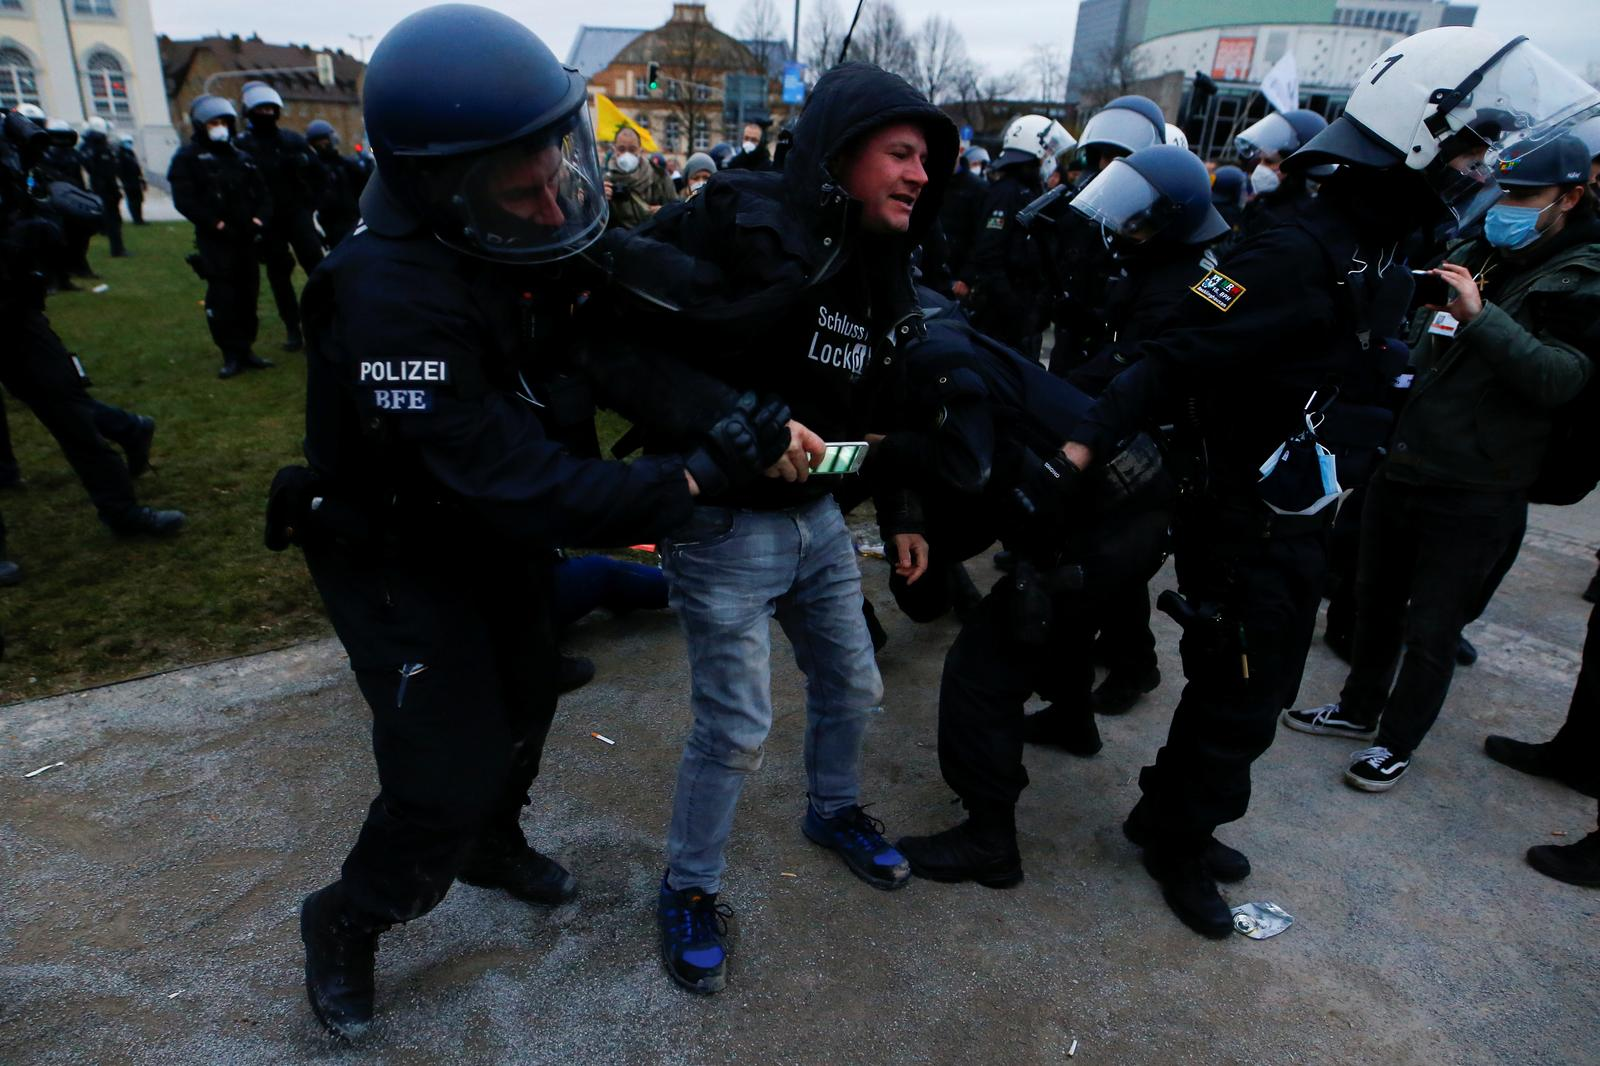 Police use water cannon as German lockdown protest turns violent